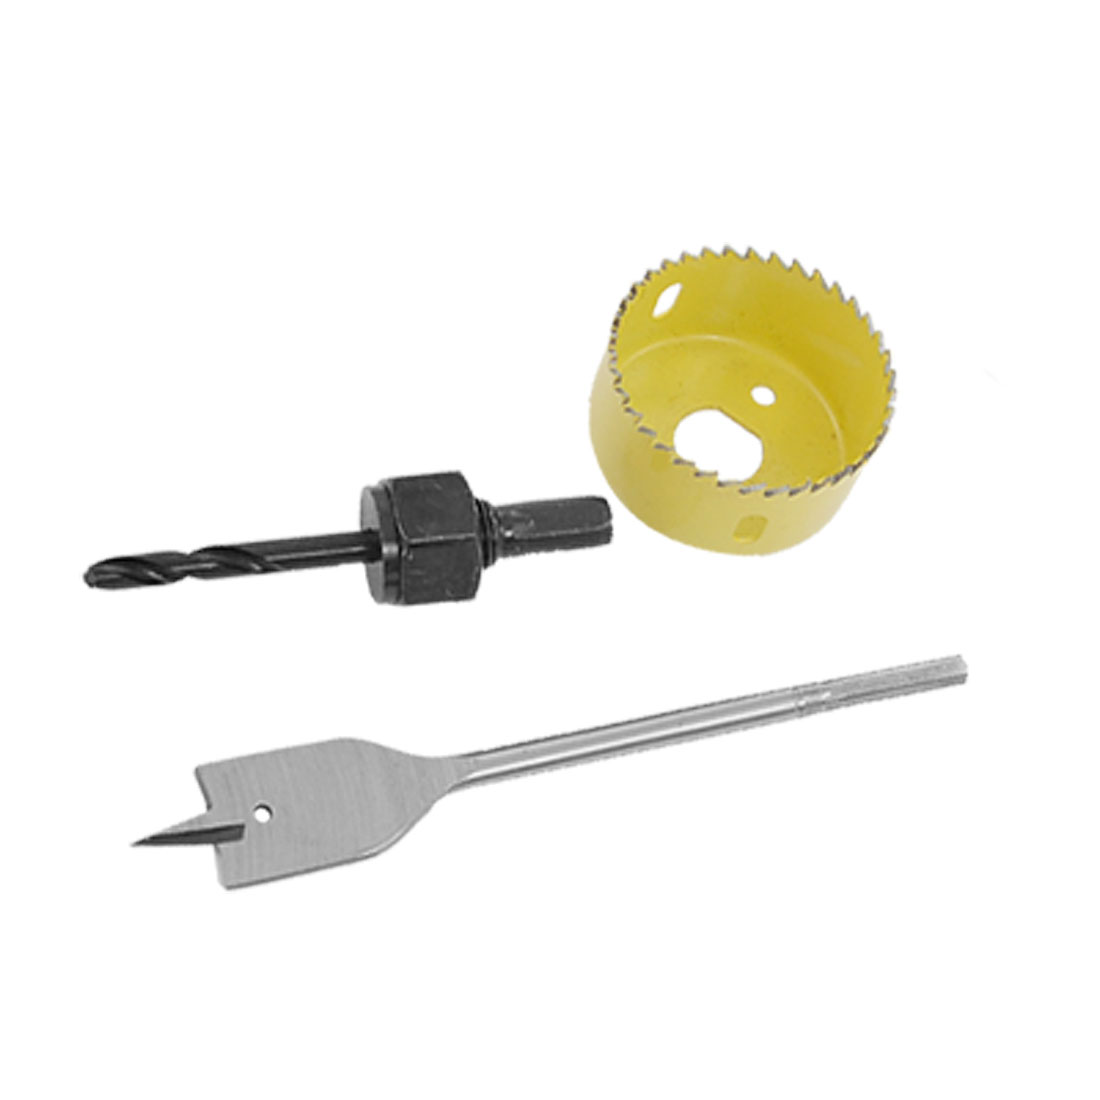 Lock Installation Kit Hole Saw Spade Bit Tools for Wood Door